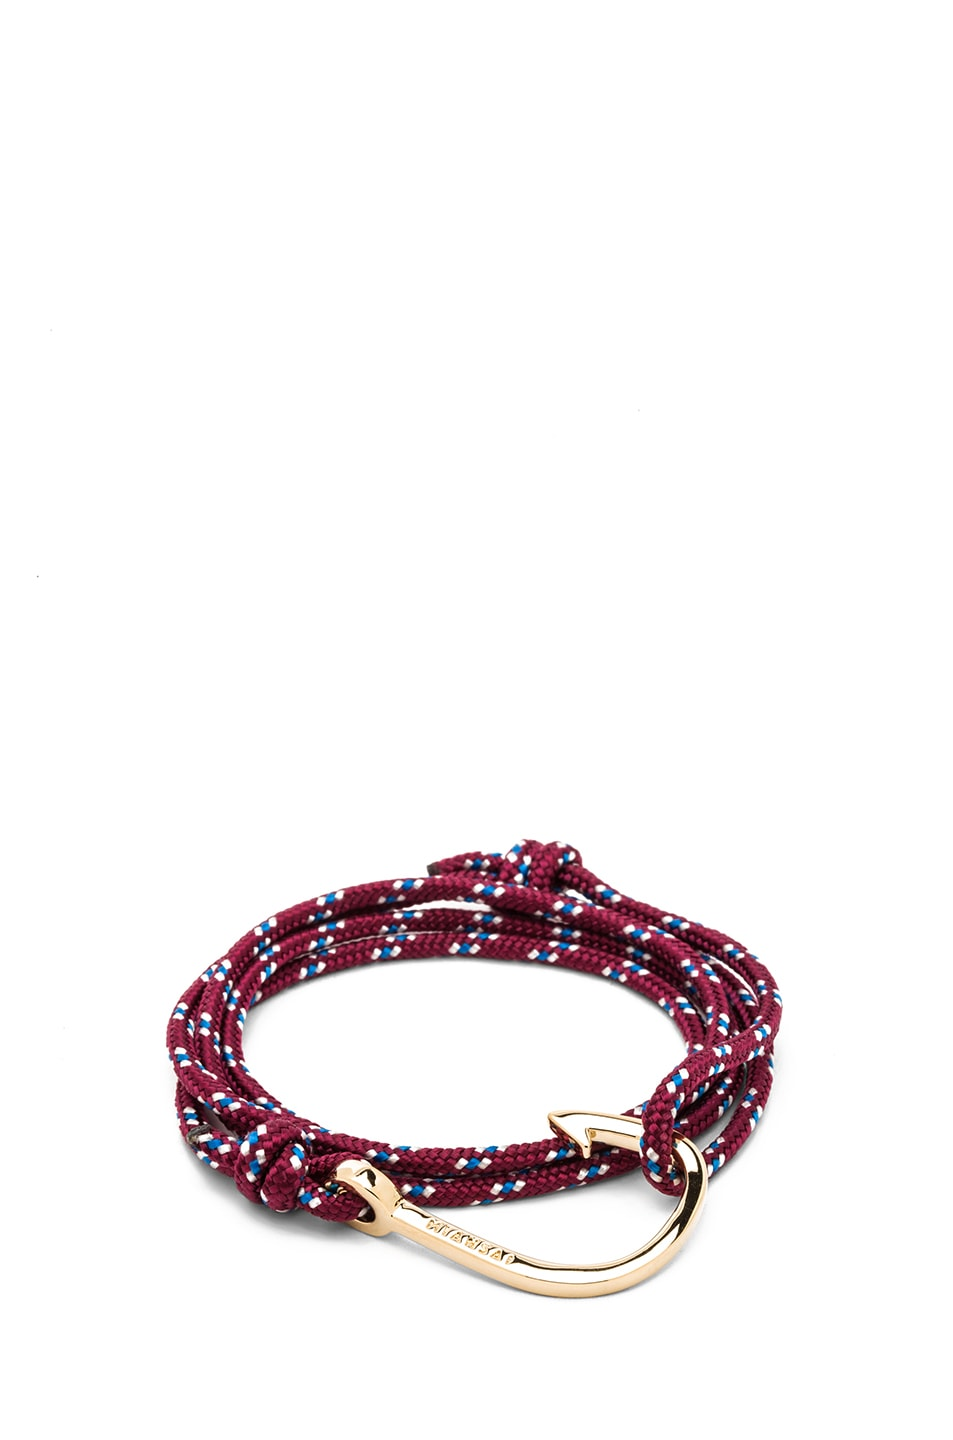 Image 1 of Miansai Hooked Rope Bracelet in Burgundy & Gold